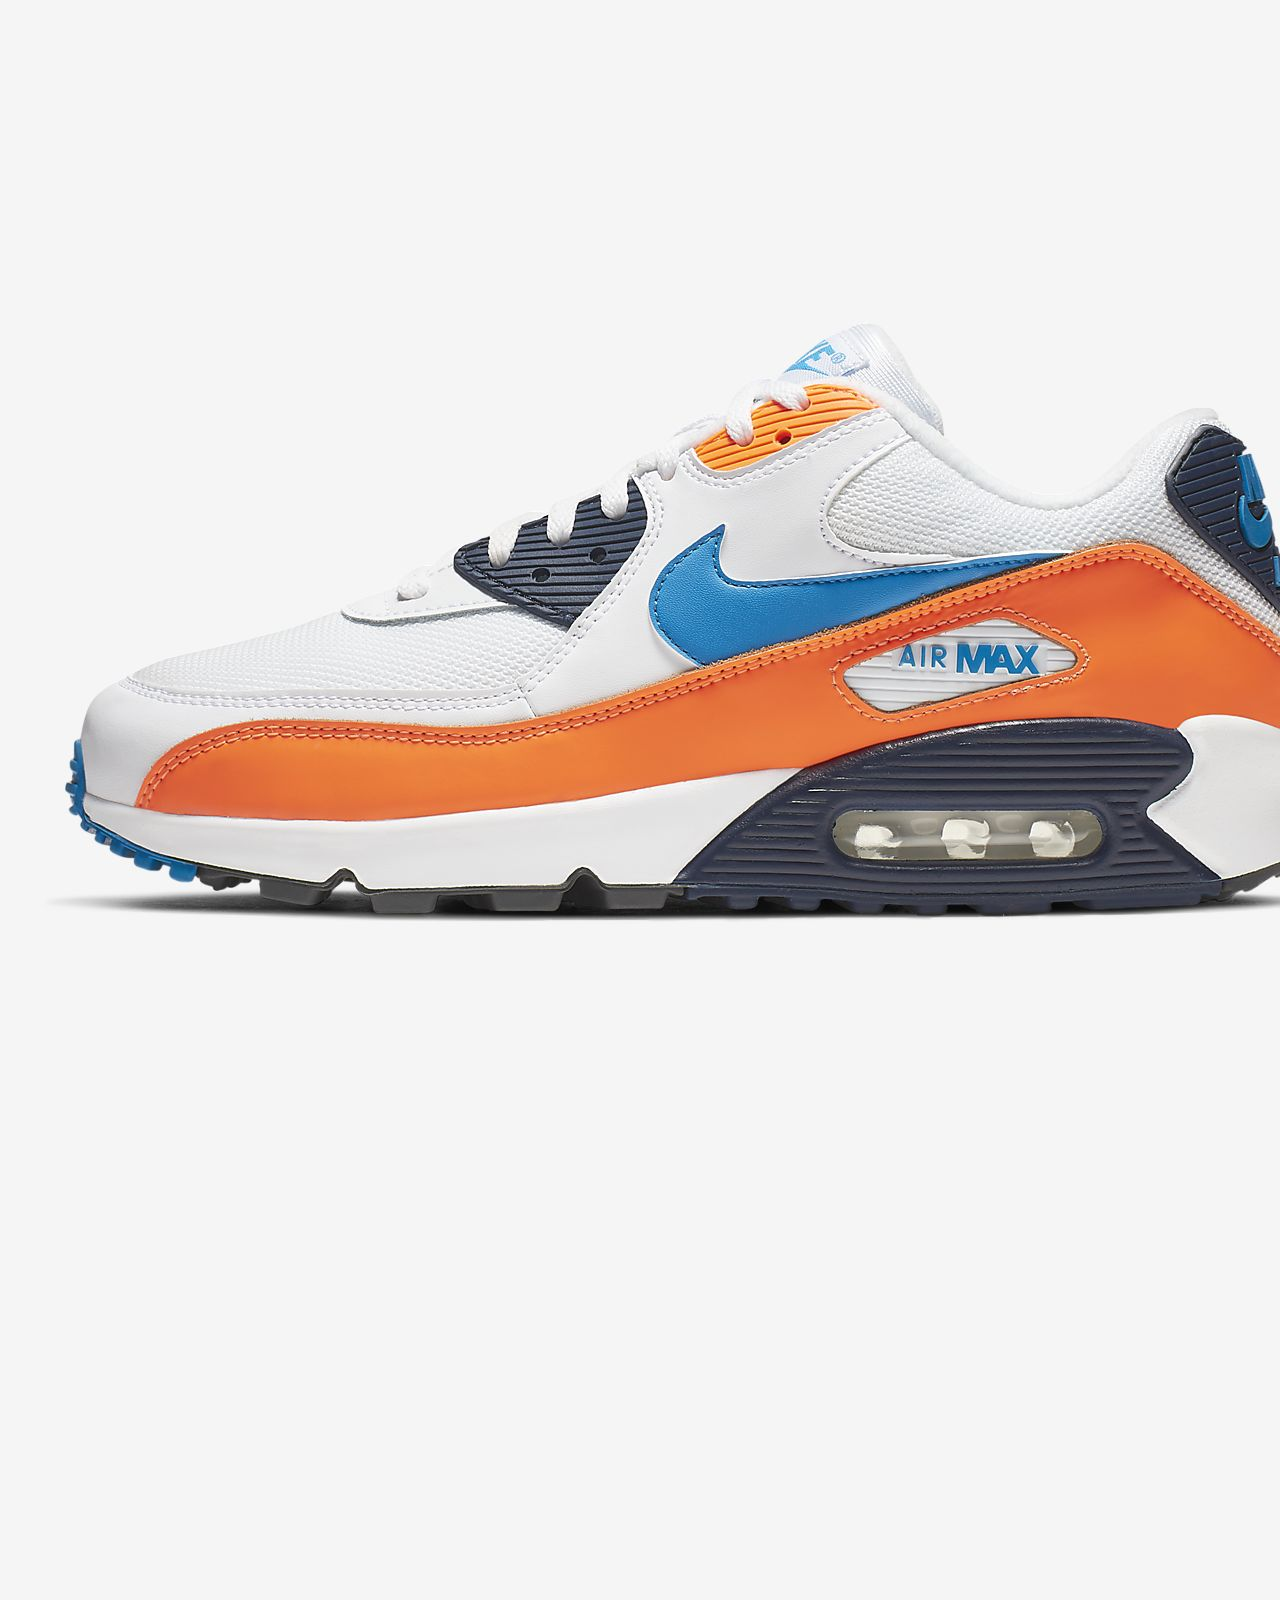 separation shoes 503e4 93cf9 ... Nike Air Max 90 Essential Men s Shoe